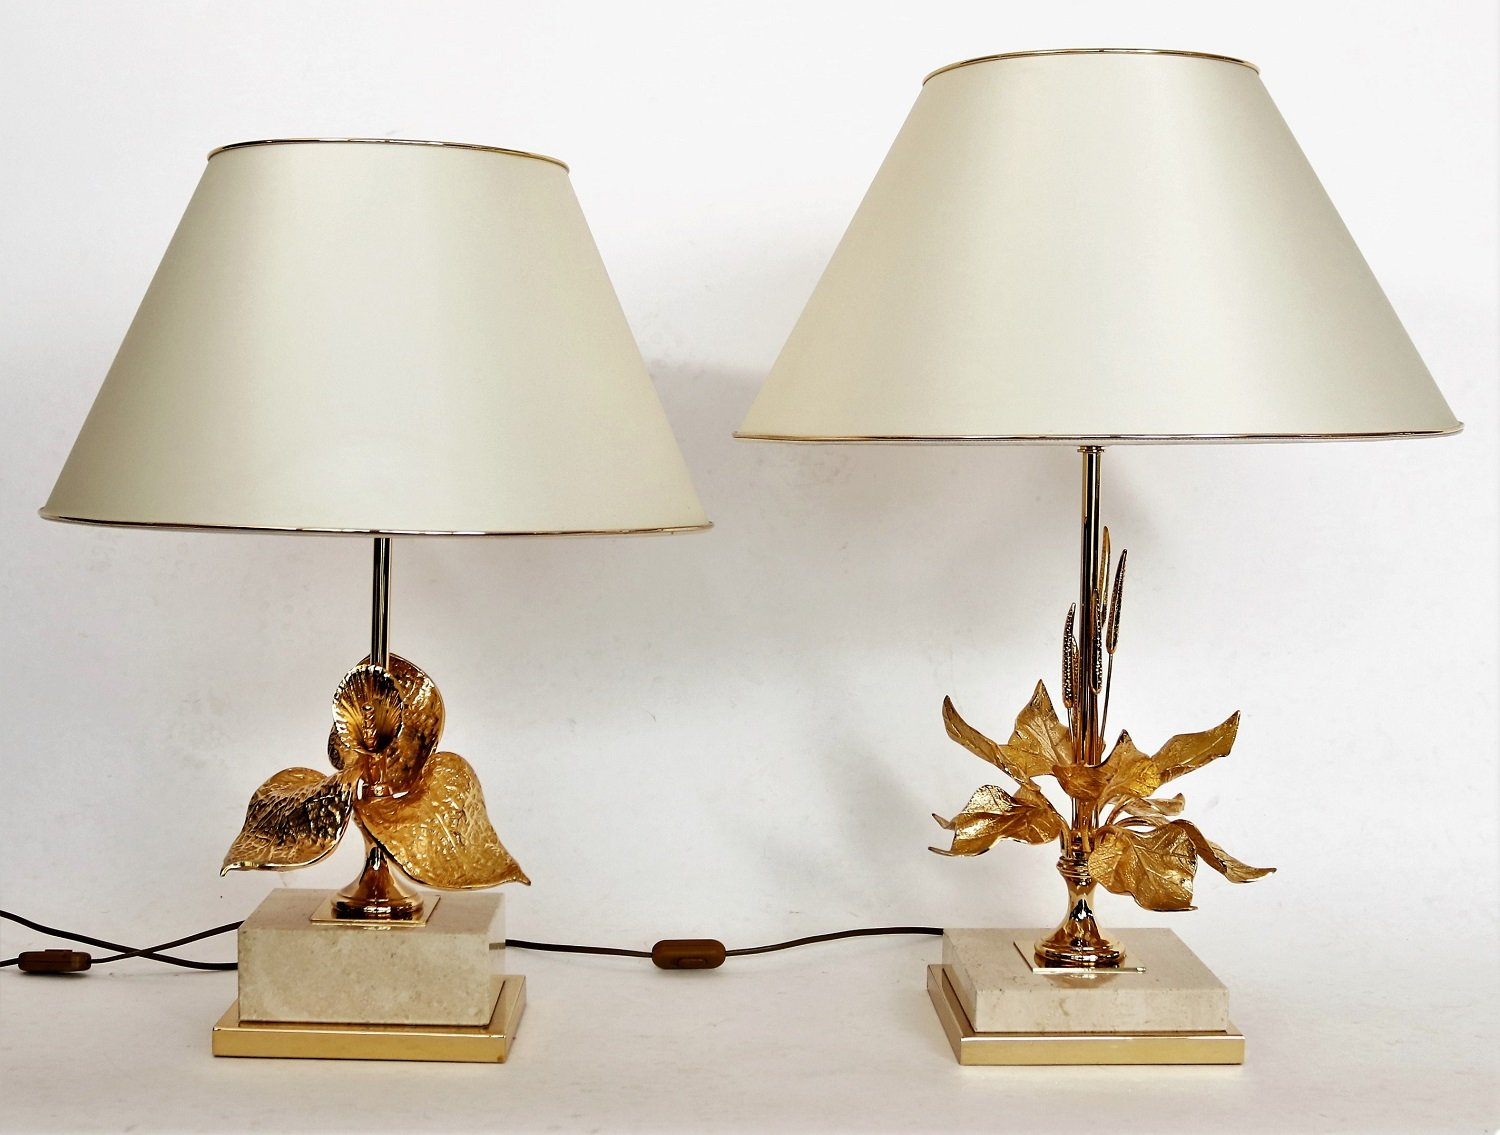 French Travertine Marble and Brass Table Lamps, 1970s, Set of 2